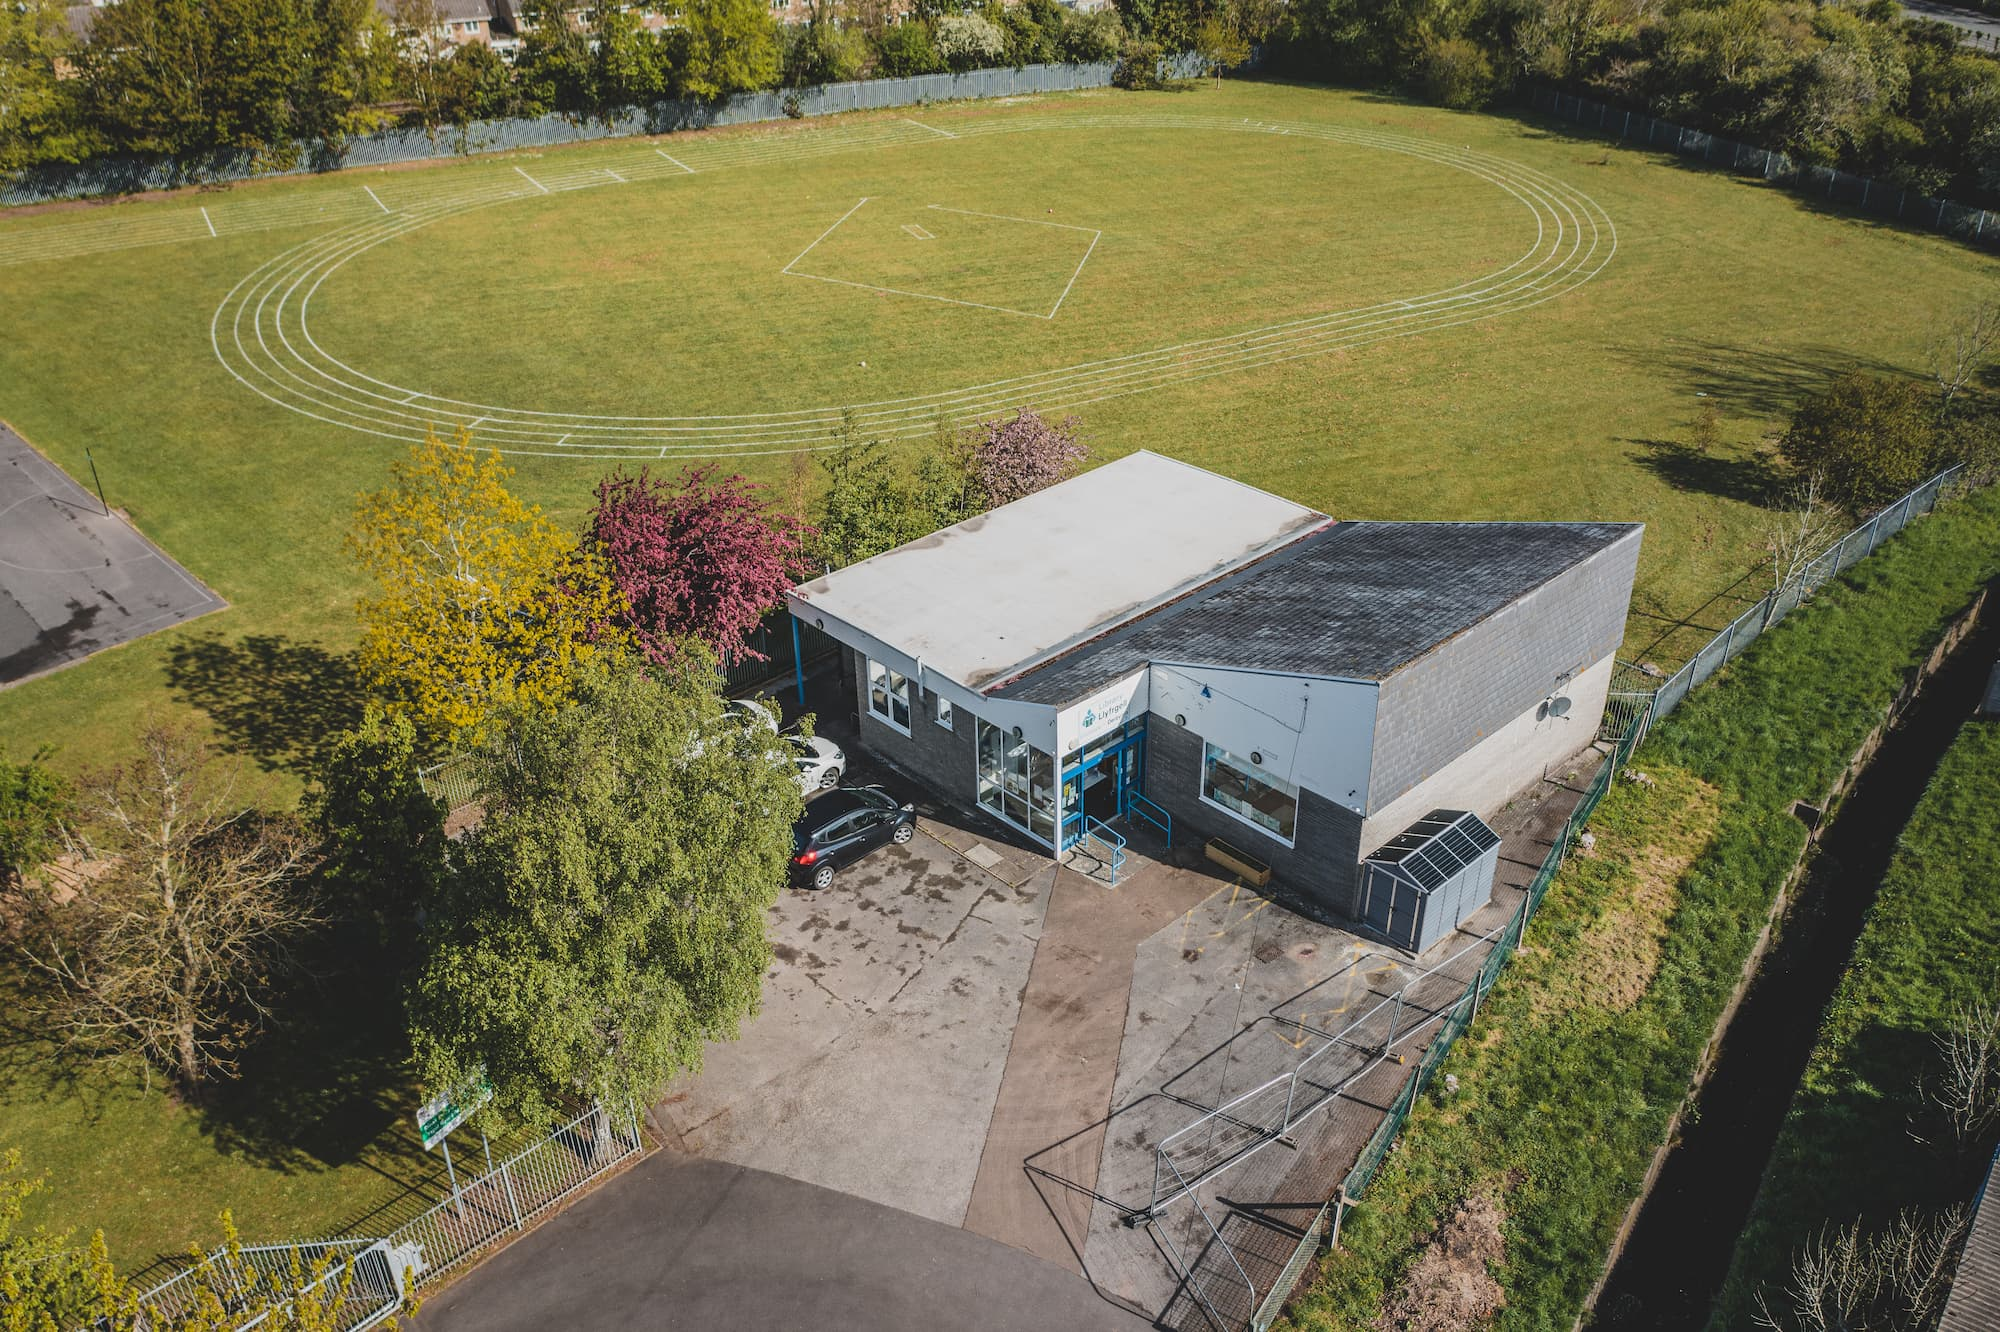 Arial view of Dinas Library. It's a modern, angular building next to trees and a big running field.